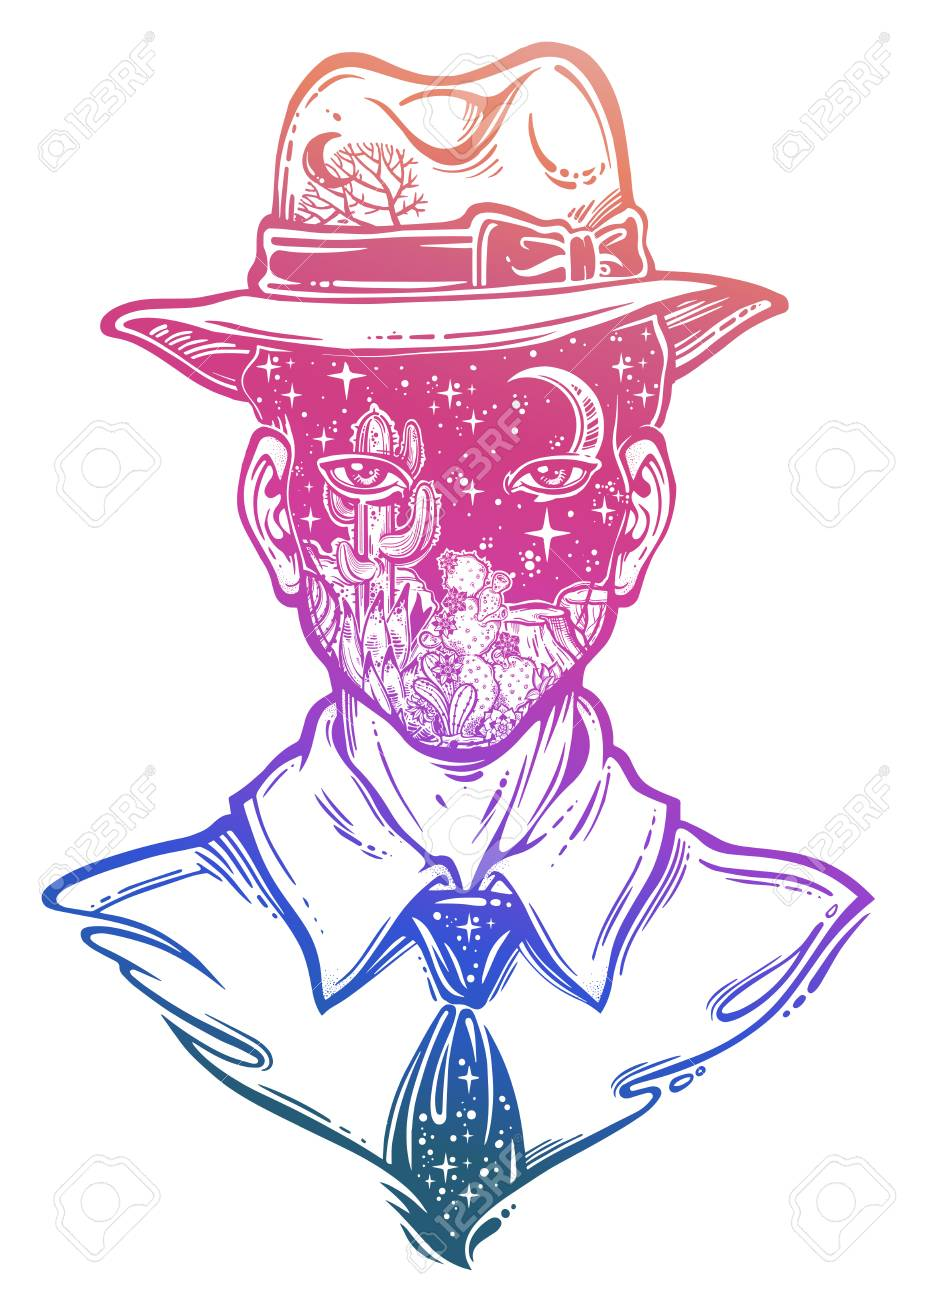 portrait of a weird man with anonymous face in a hat graphic